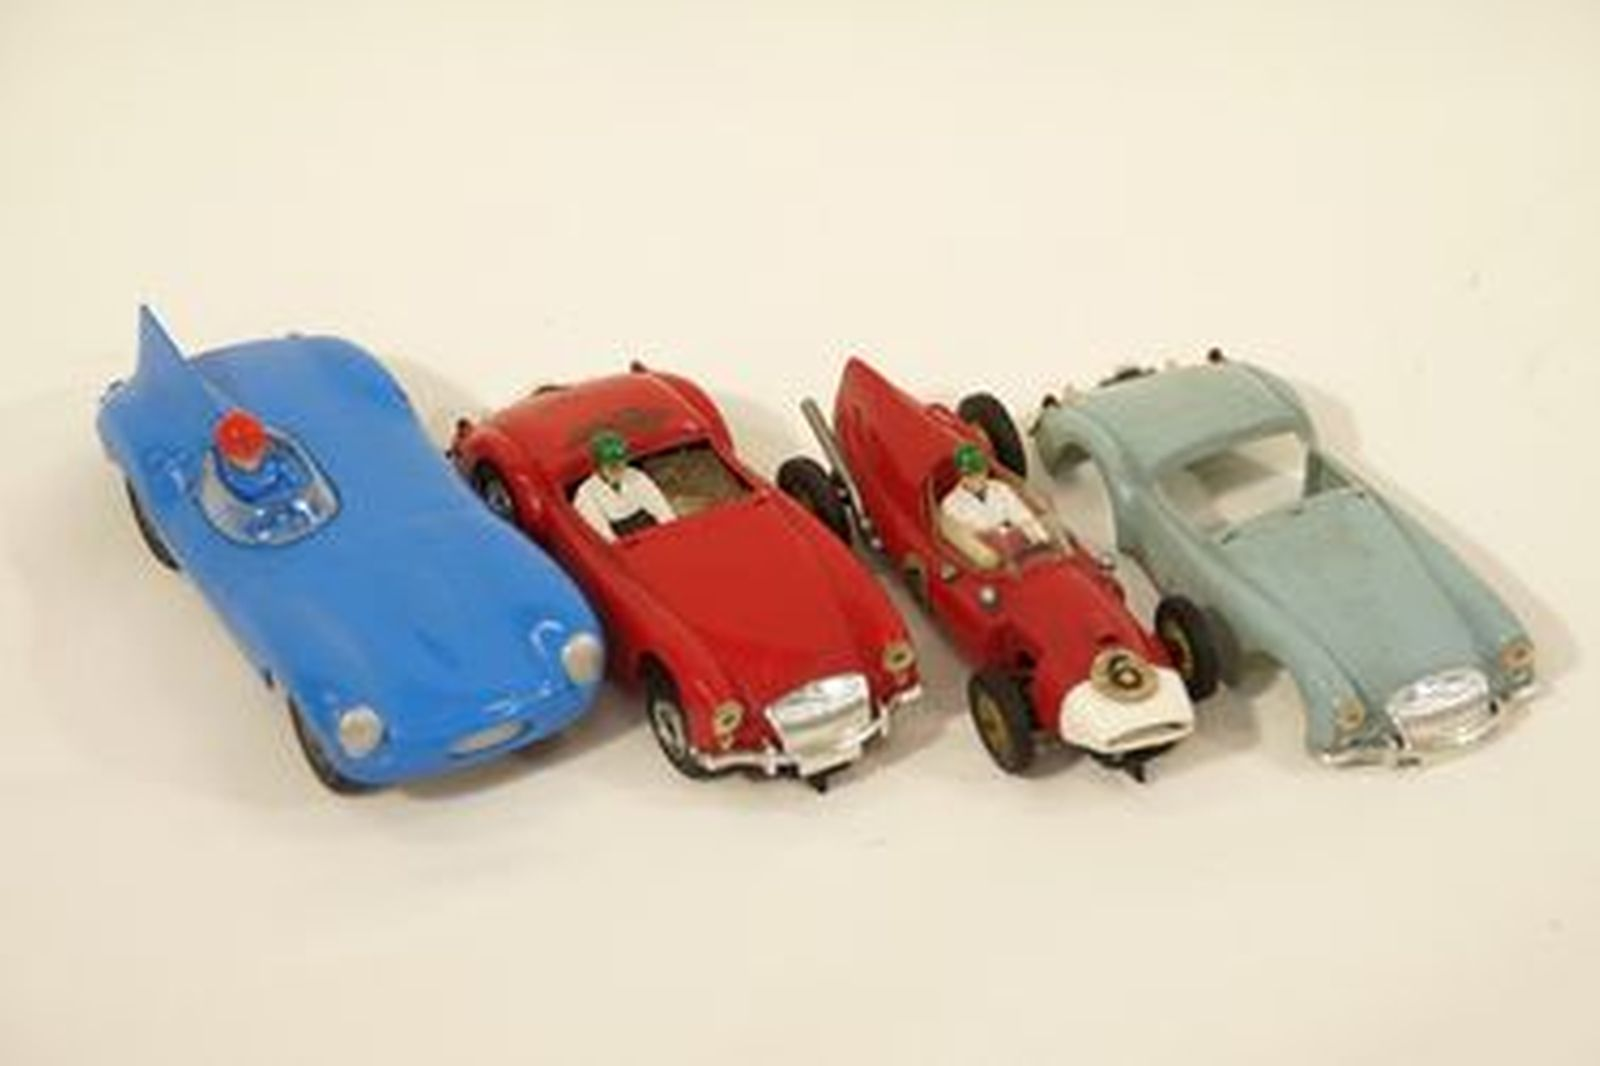 Sold: Slot Cars x 3 - Jaguar D-Type by Lionel, NY, VIP MGA